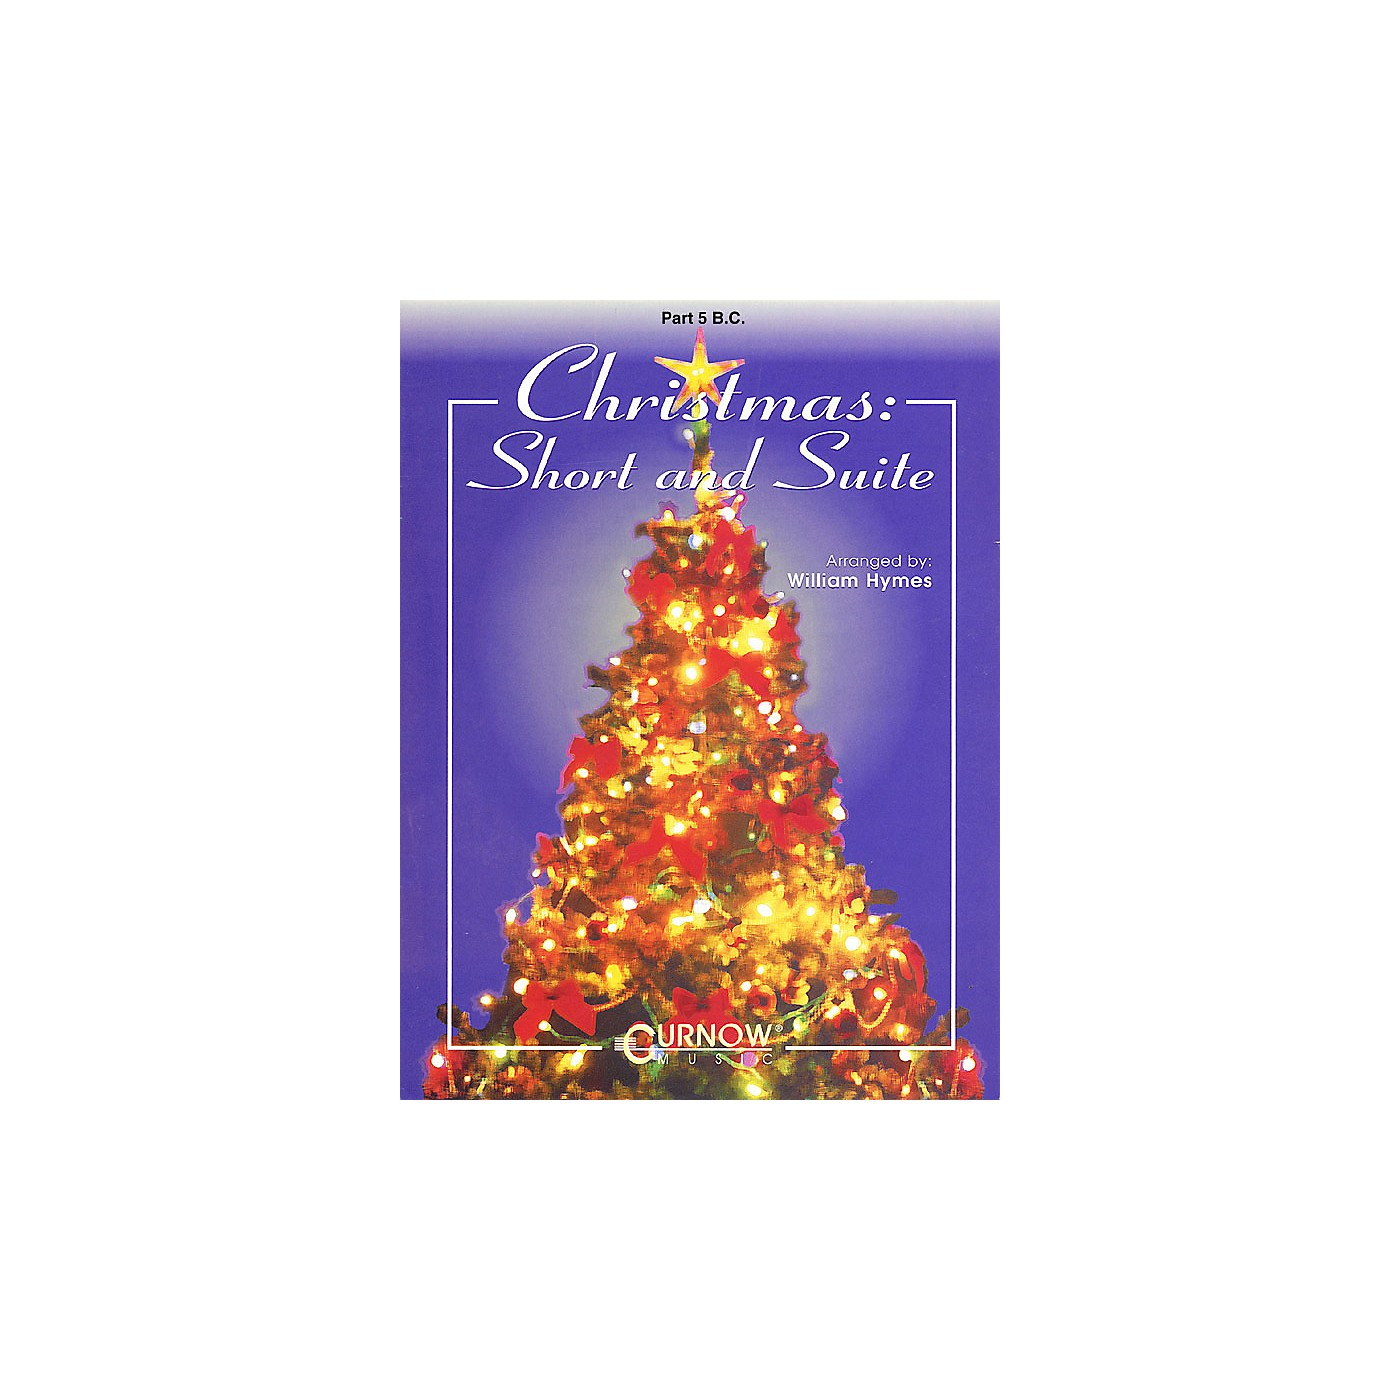 Curnow Music Christmas: Short and Suite (Part 5 - Bass Clef) Concert Band Level 2-4 Arranged by William Himes thumbnail